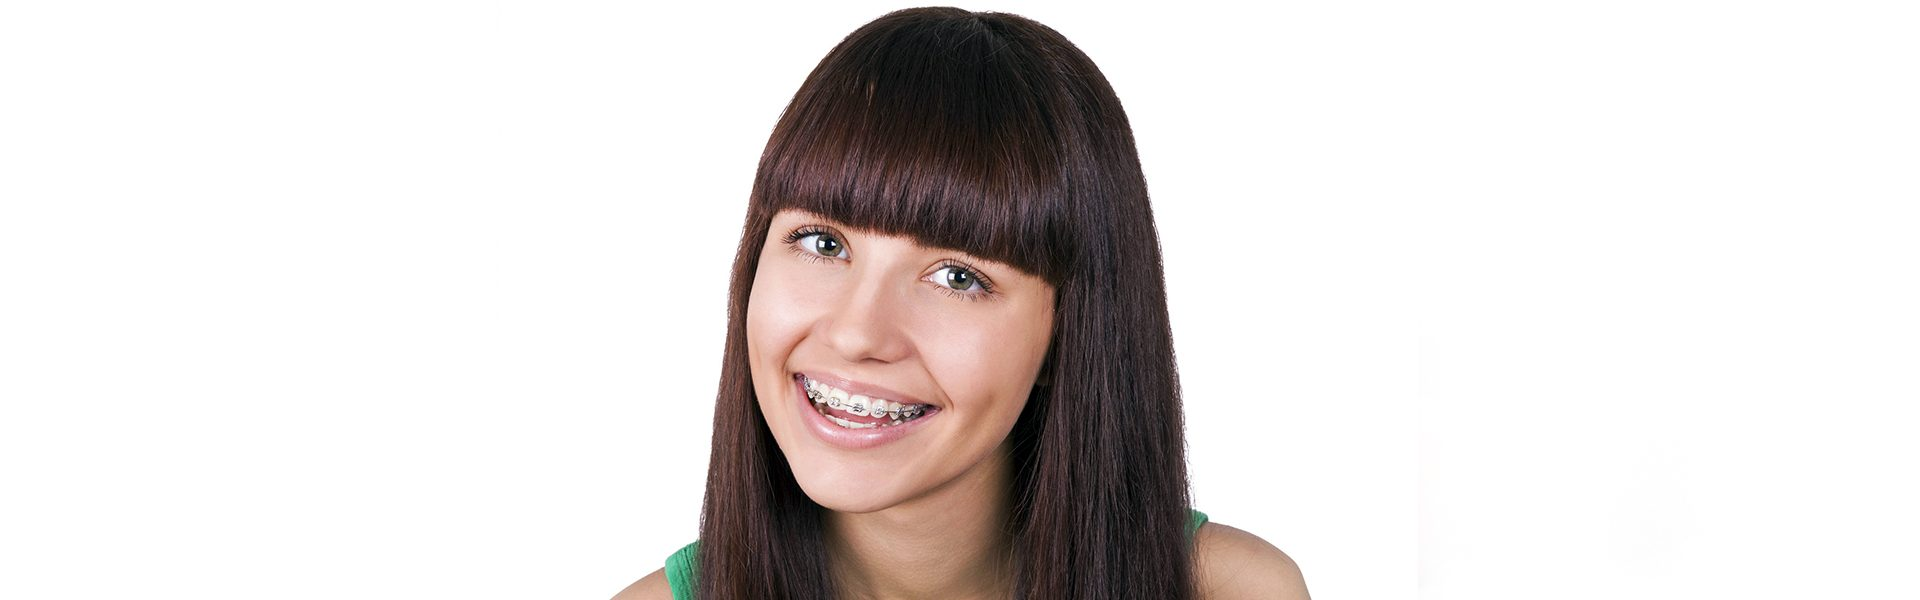 Why You Should Align Your Teeth with Accelerated Braces